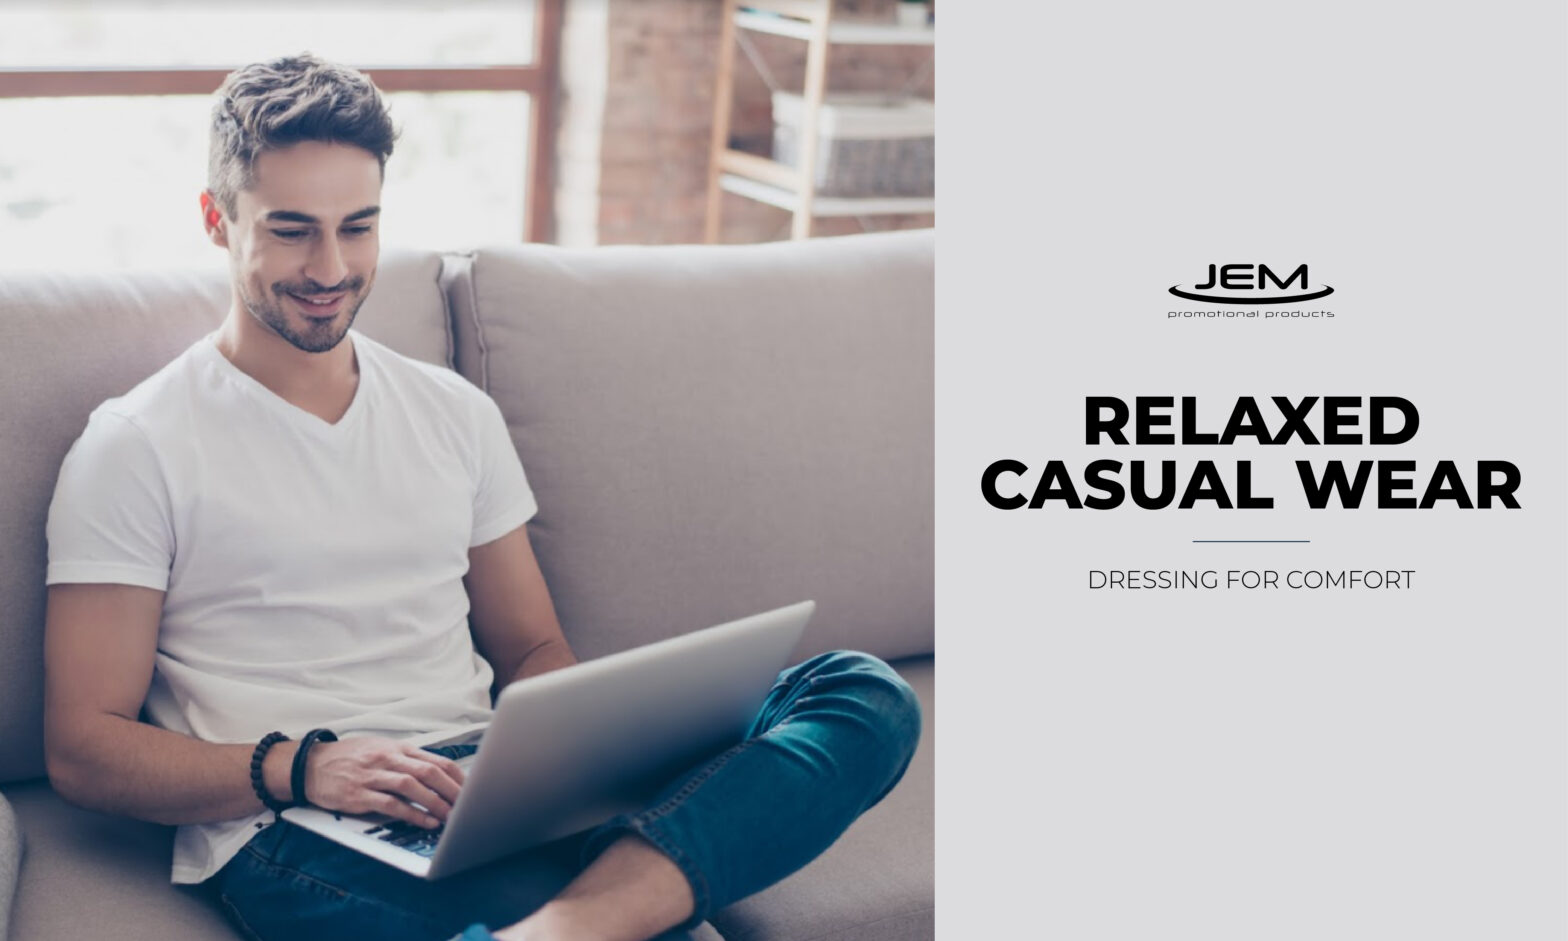 RELAXED CASUAL WEAR